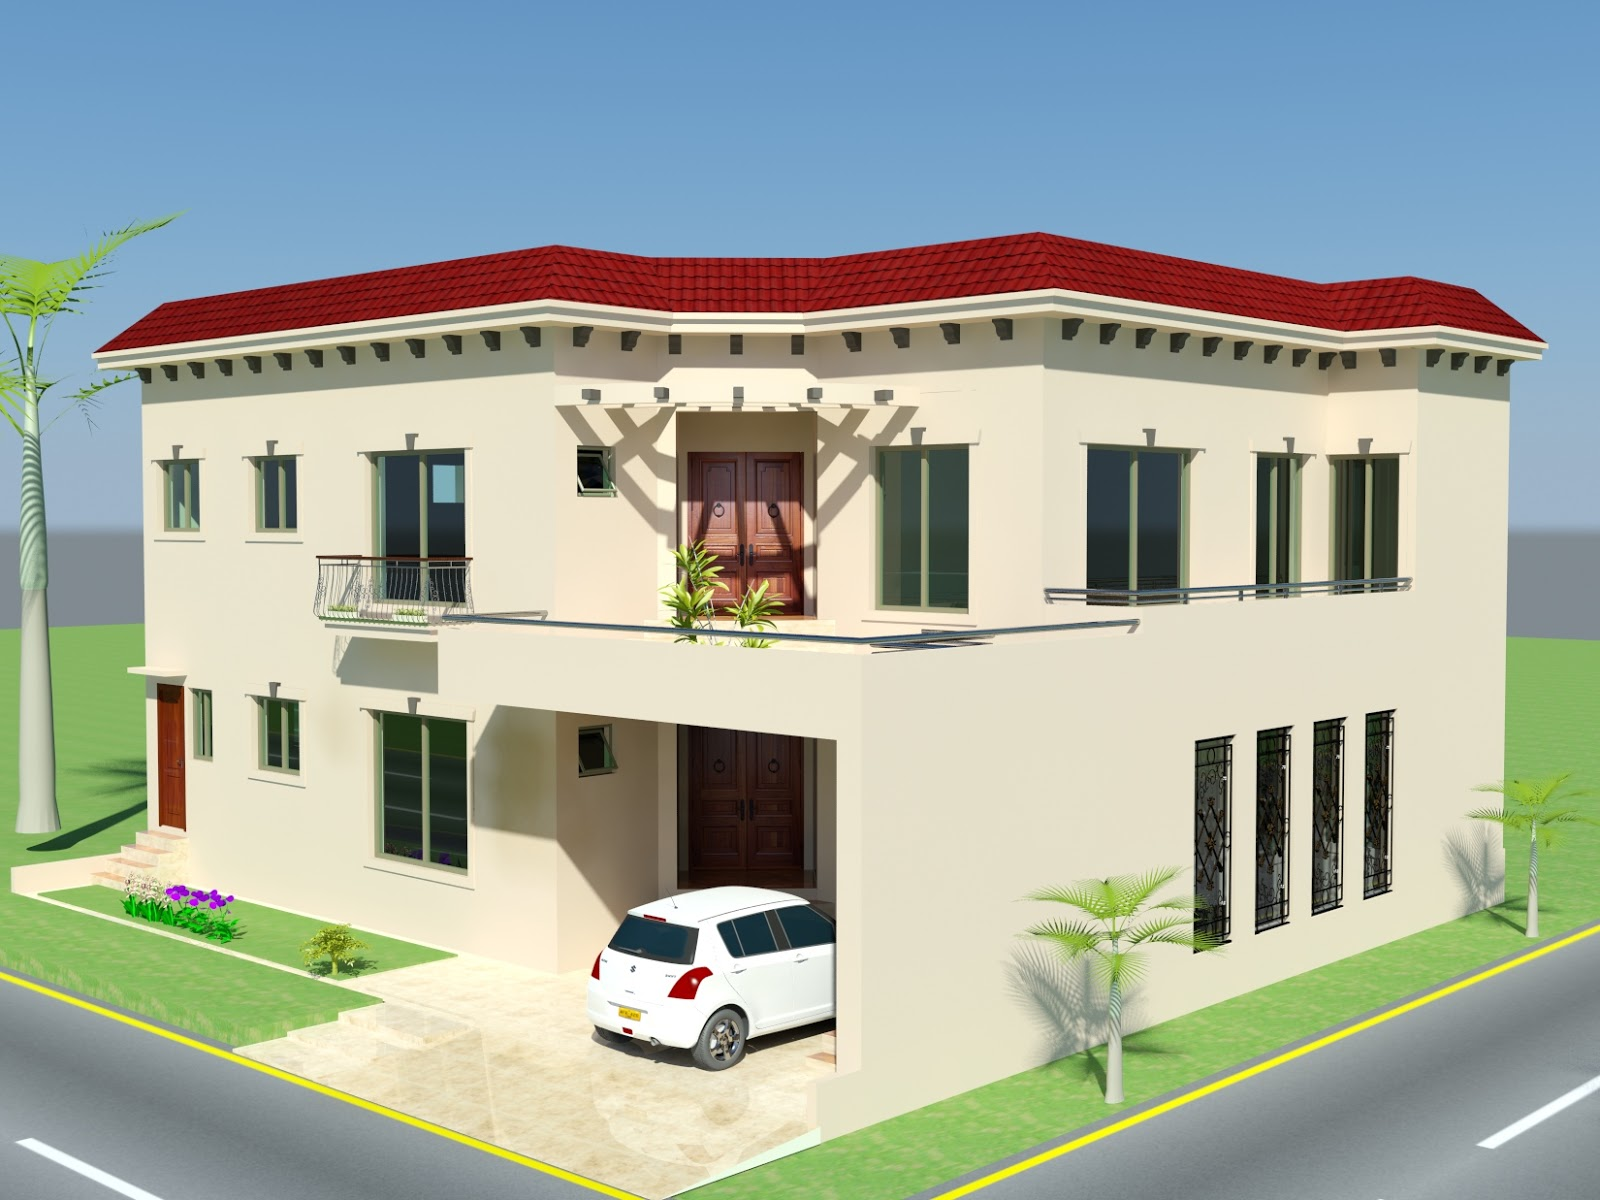 Home Design In Pakistan 3d front elevation construction interior design services in pakistan 10 Marla Planhouse Design In Pakistan3d Front Elevationrawalpindi Pakistan